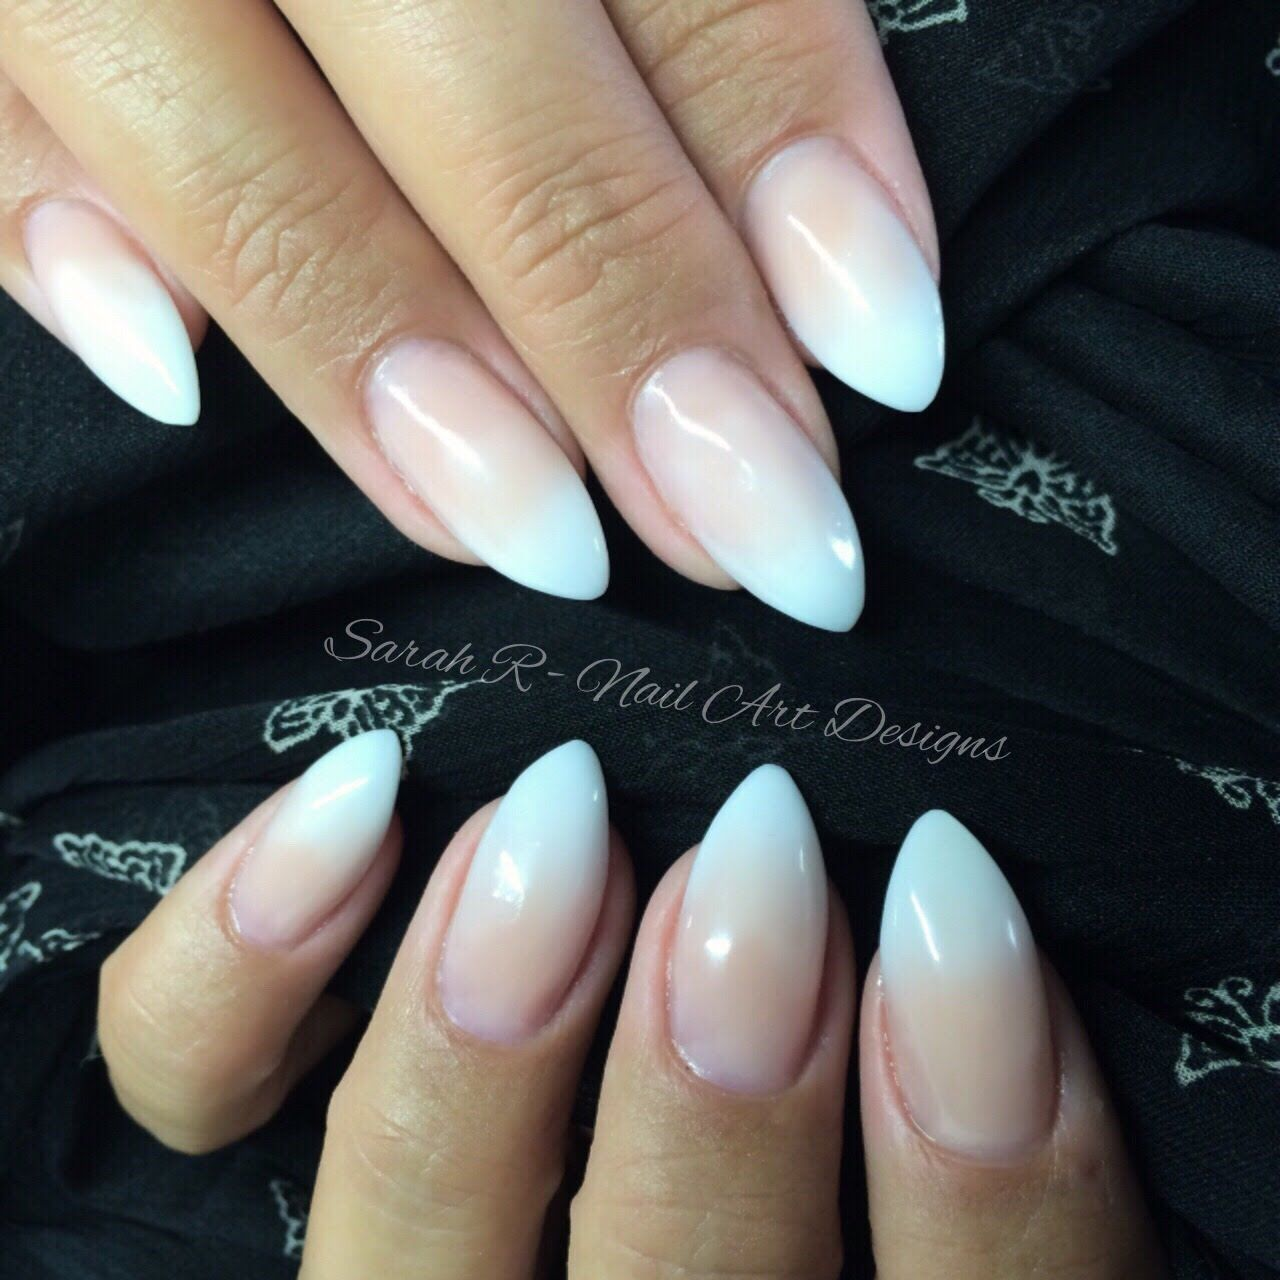 Baby Boomer Faded Ombre French Acrylic Nails Ink London Acrylink Ombre Nails Tutorial French Acrylic Nails Ombre Nails